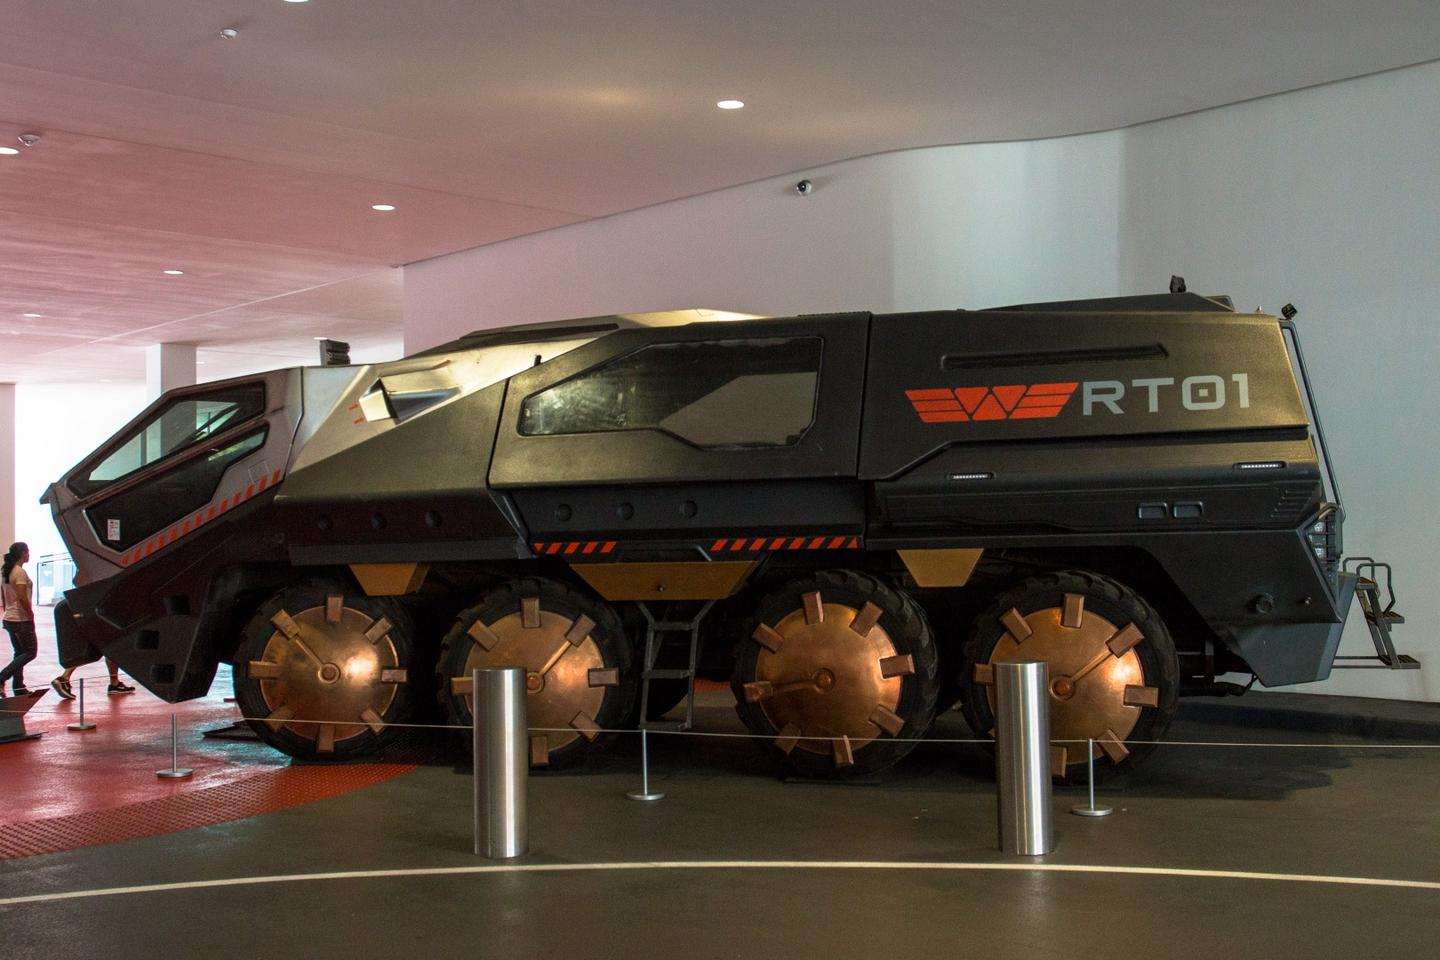 Starting out life as a Tatra T813 Czech military truck, this machine was rebuilt into the hulking 'RT01 Transport' moon exploration vehicle for the 2012 film Prometheus